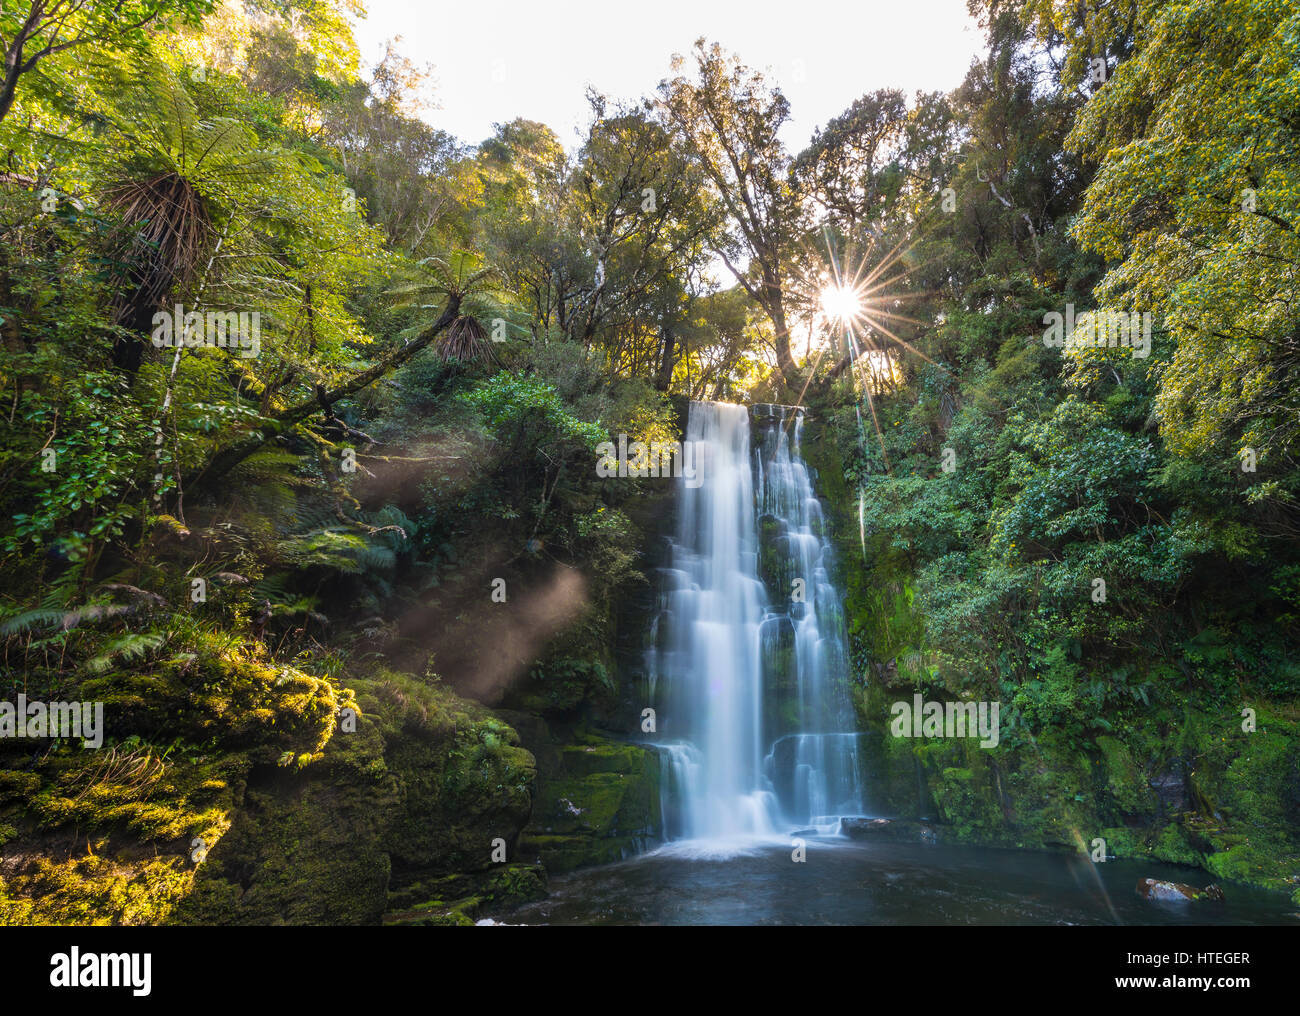 McLean waterfall, Sun Star, The Catlins, Otago, Southland, New Zealand - Stock Image